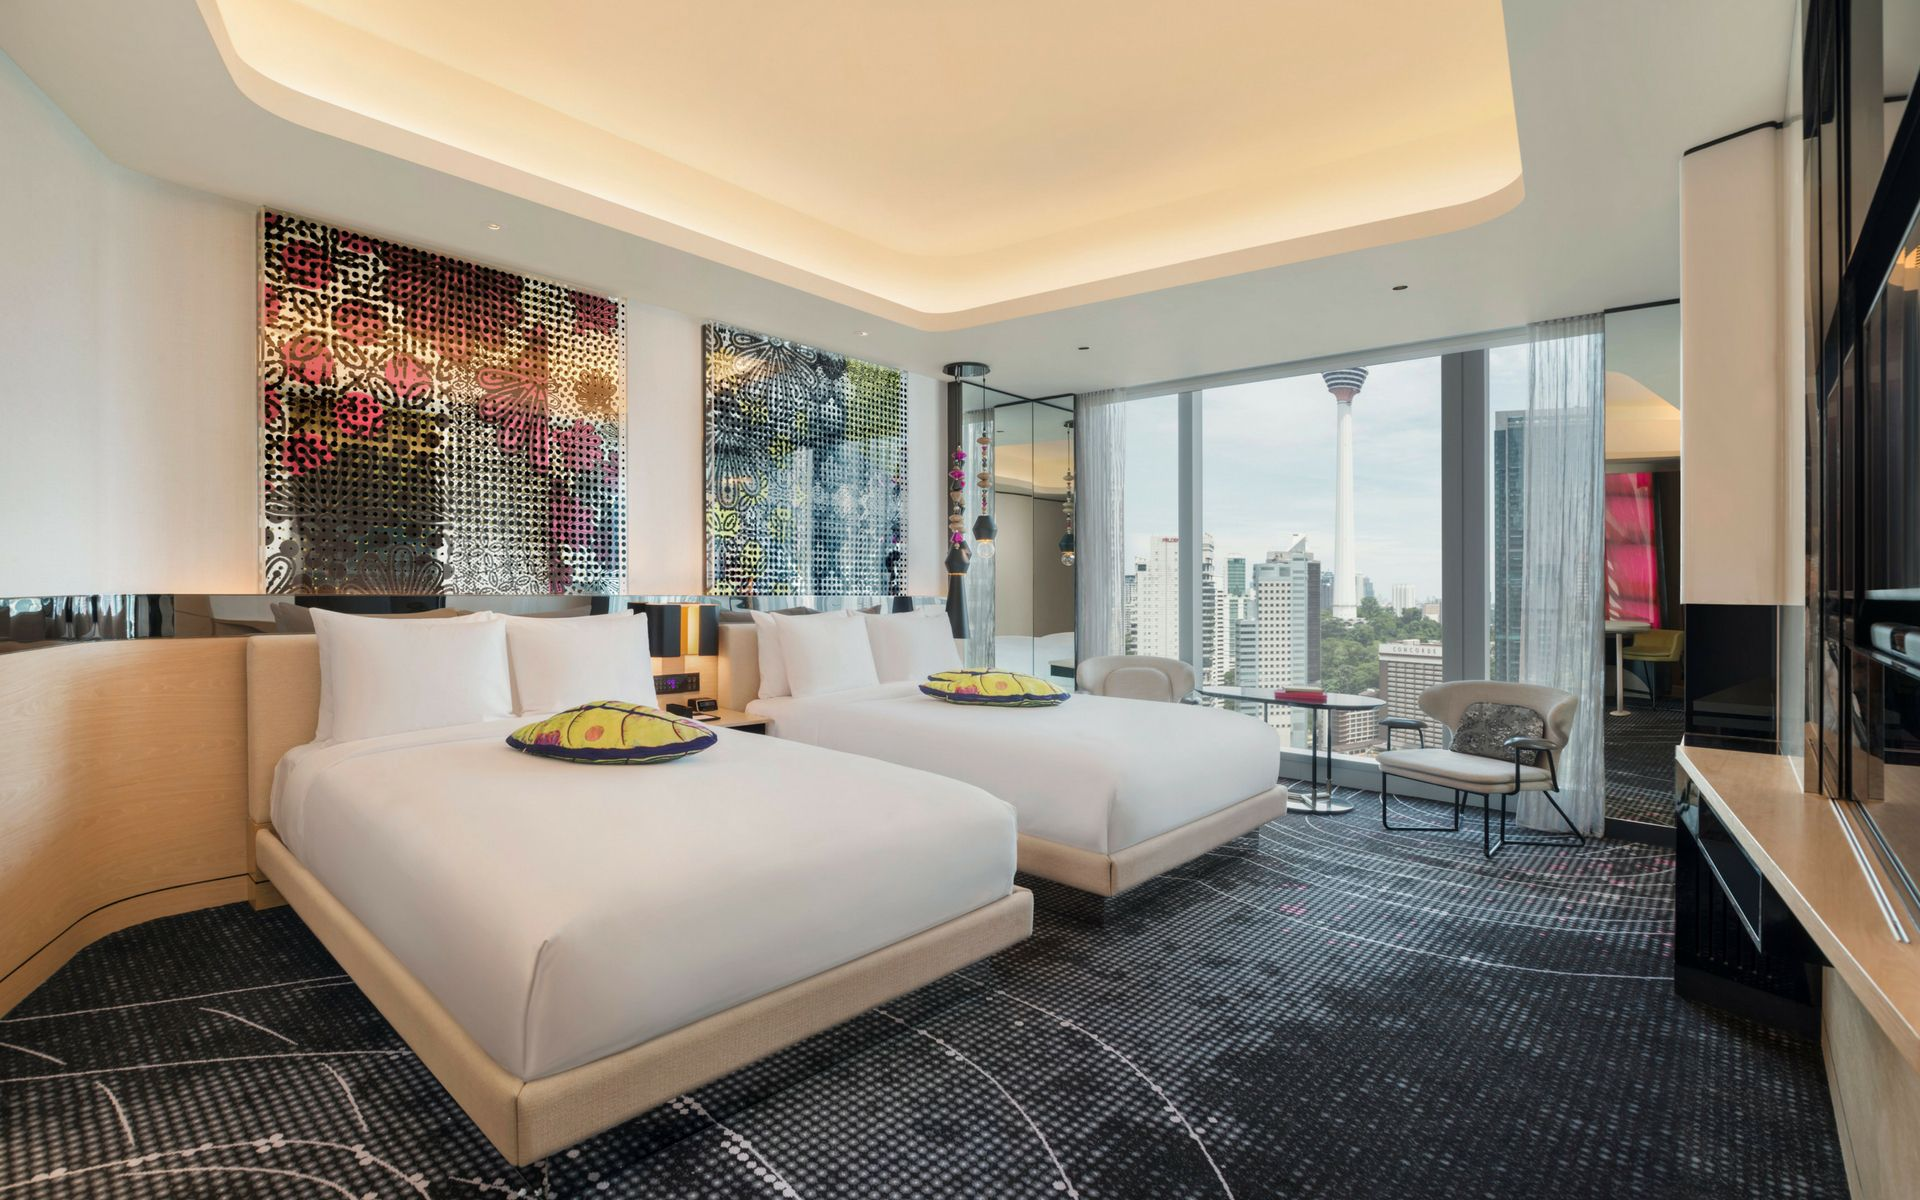 W Kuala Lumpur Makes A Grand Debut: Go Inside The Swanky Hotel